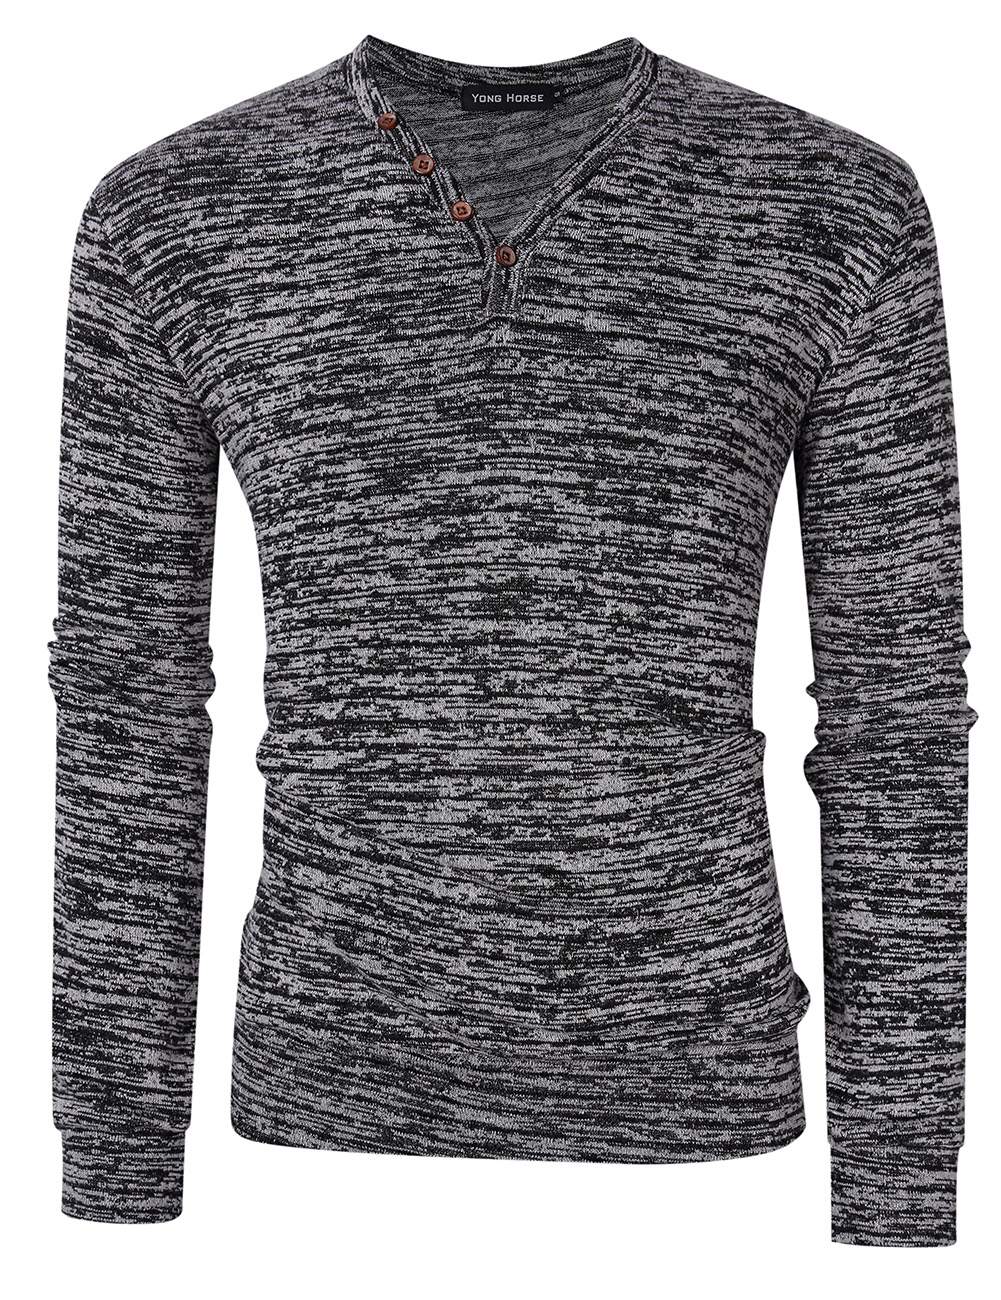 Men's Textured V Neck Casual Henley Shirt